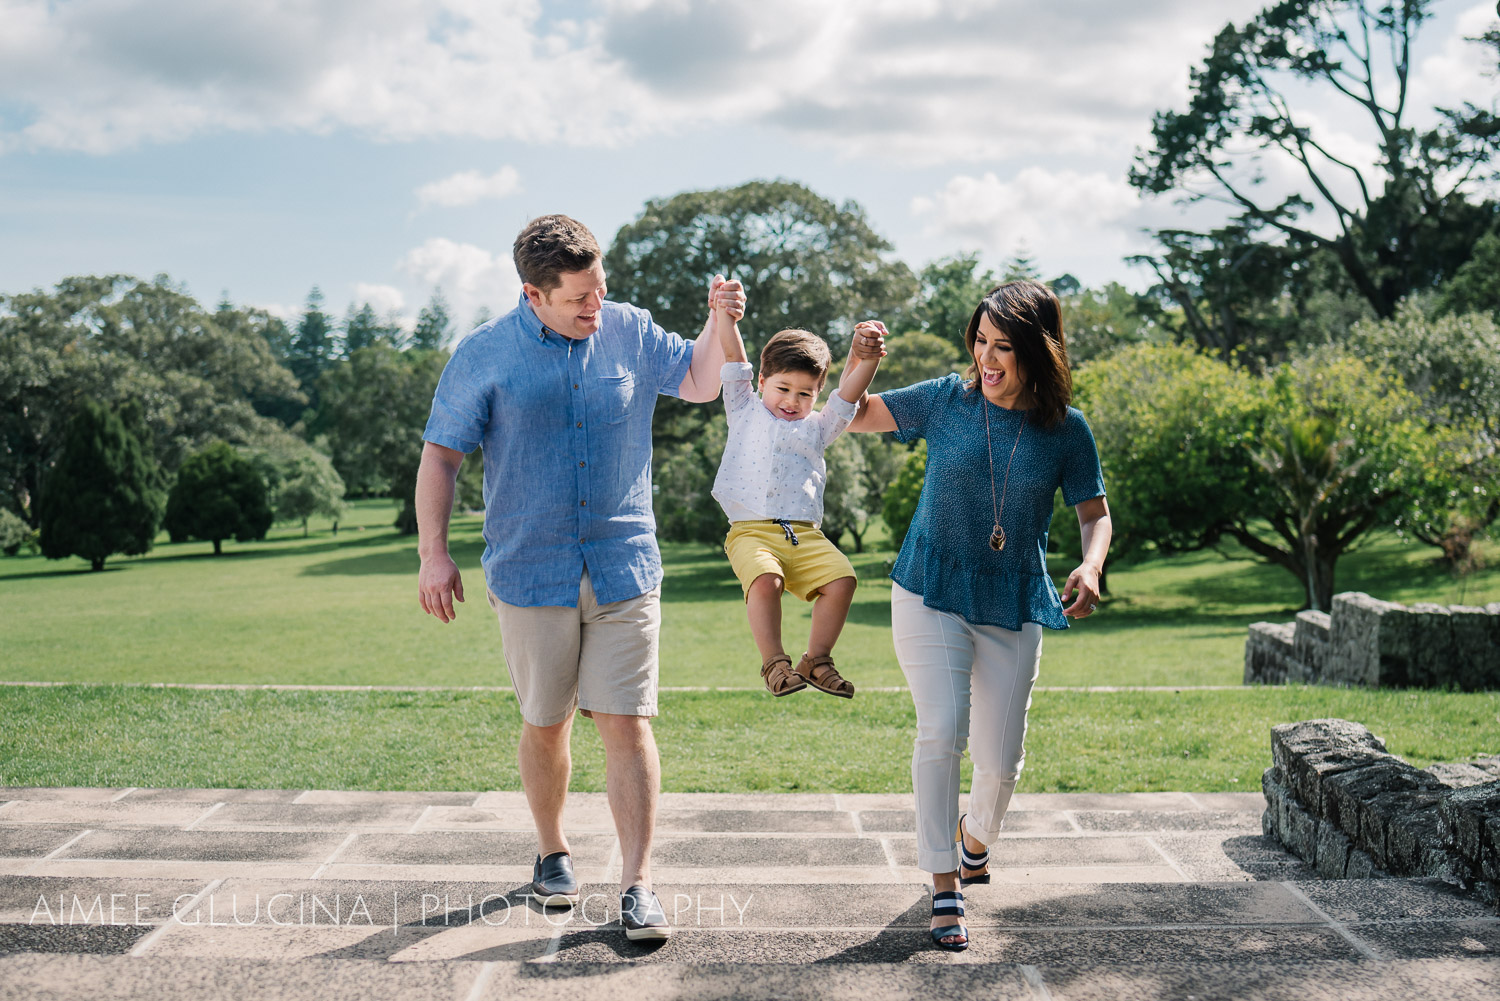 Marks Family Session by Aimee Glucina Photography-3.jpg